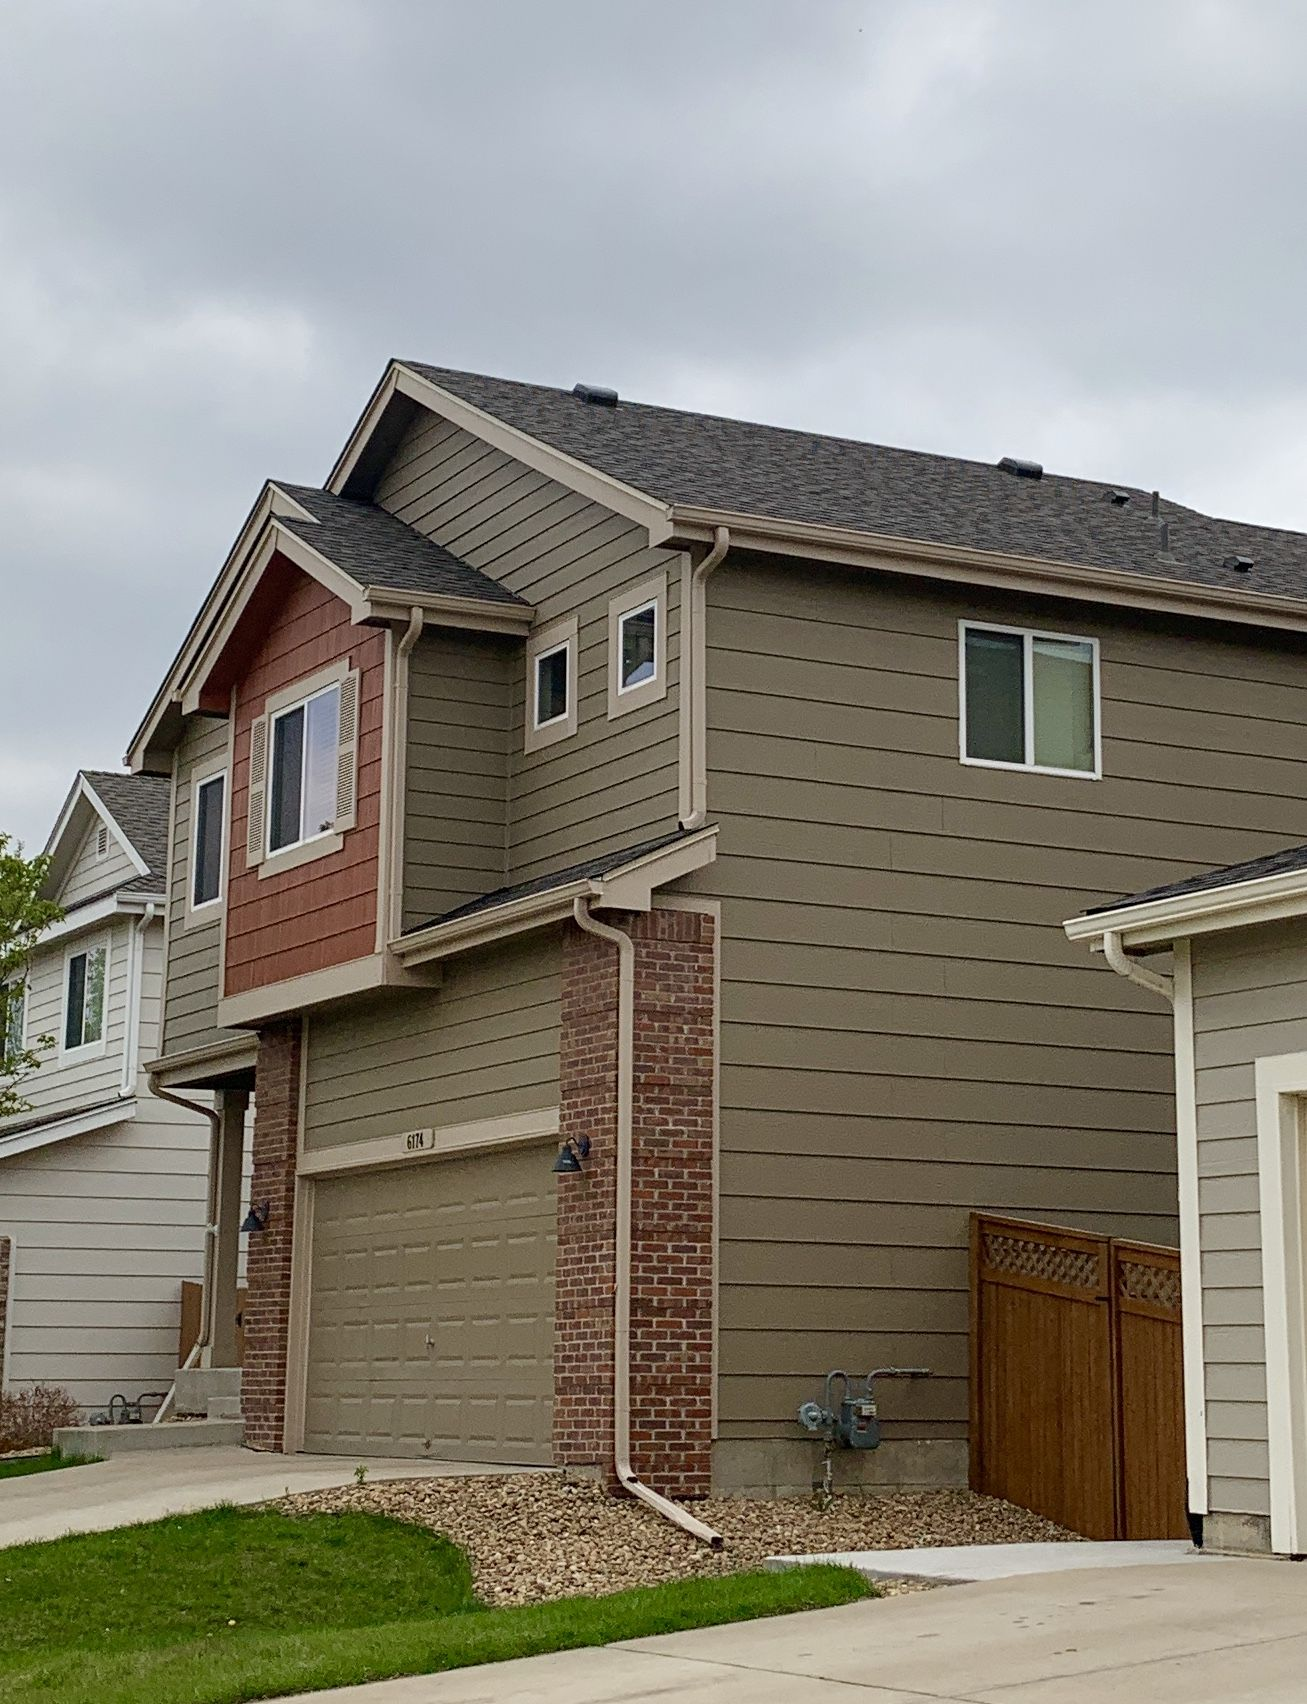 Weathered Wood Architectural Shingles Architectural Shingles Roof Residential Roofing